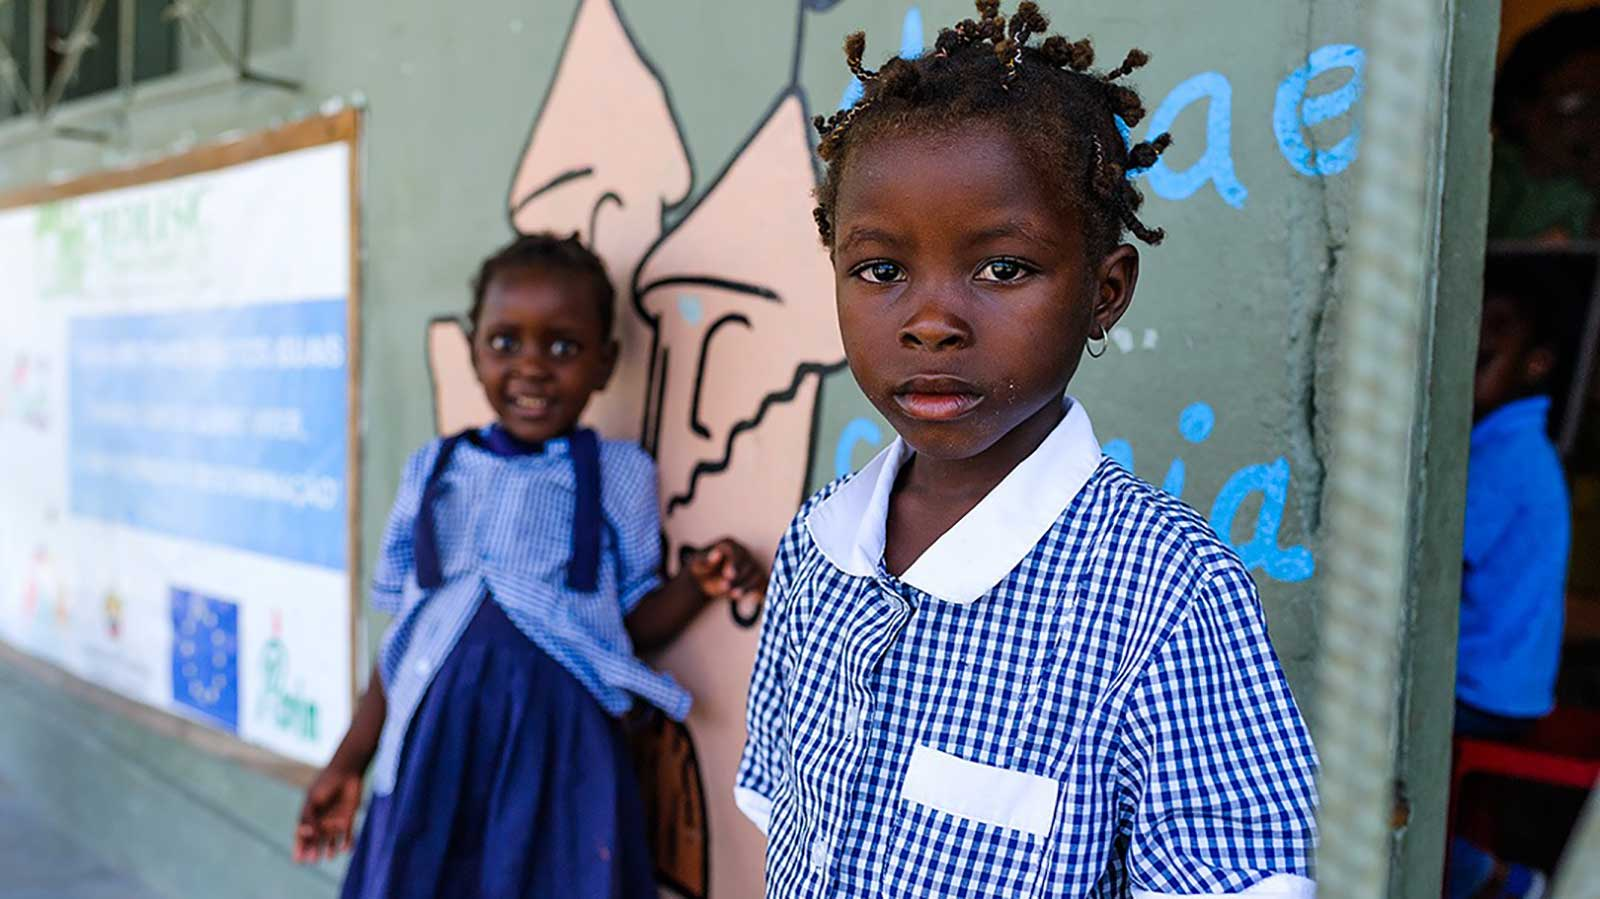 Two-preschoolers-in-Mozambique-stand-against-their-school-which-was-rebuilt-after-Cyclone-Idai